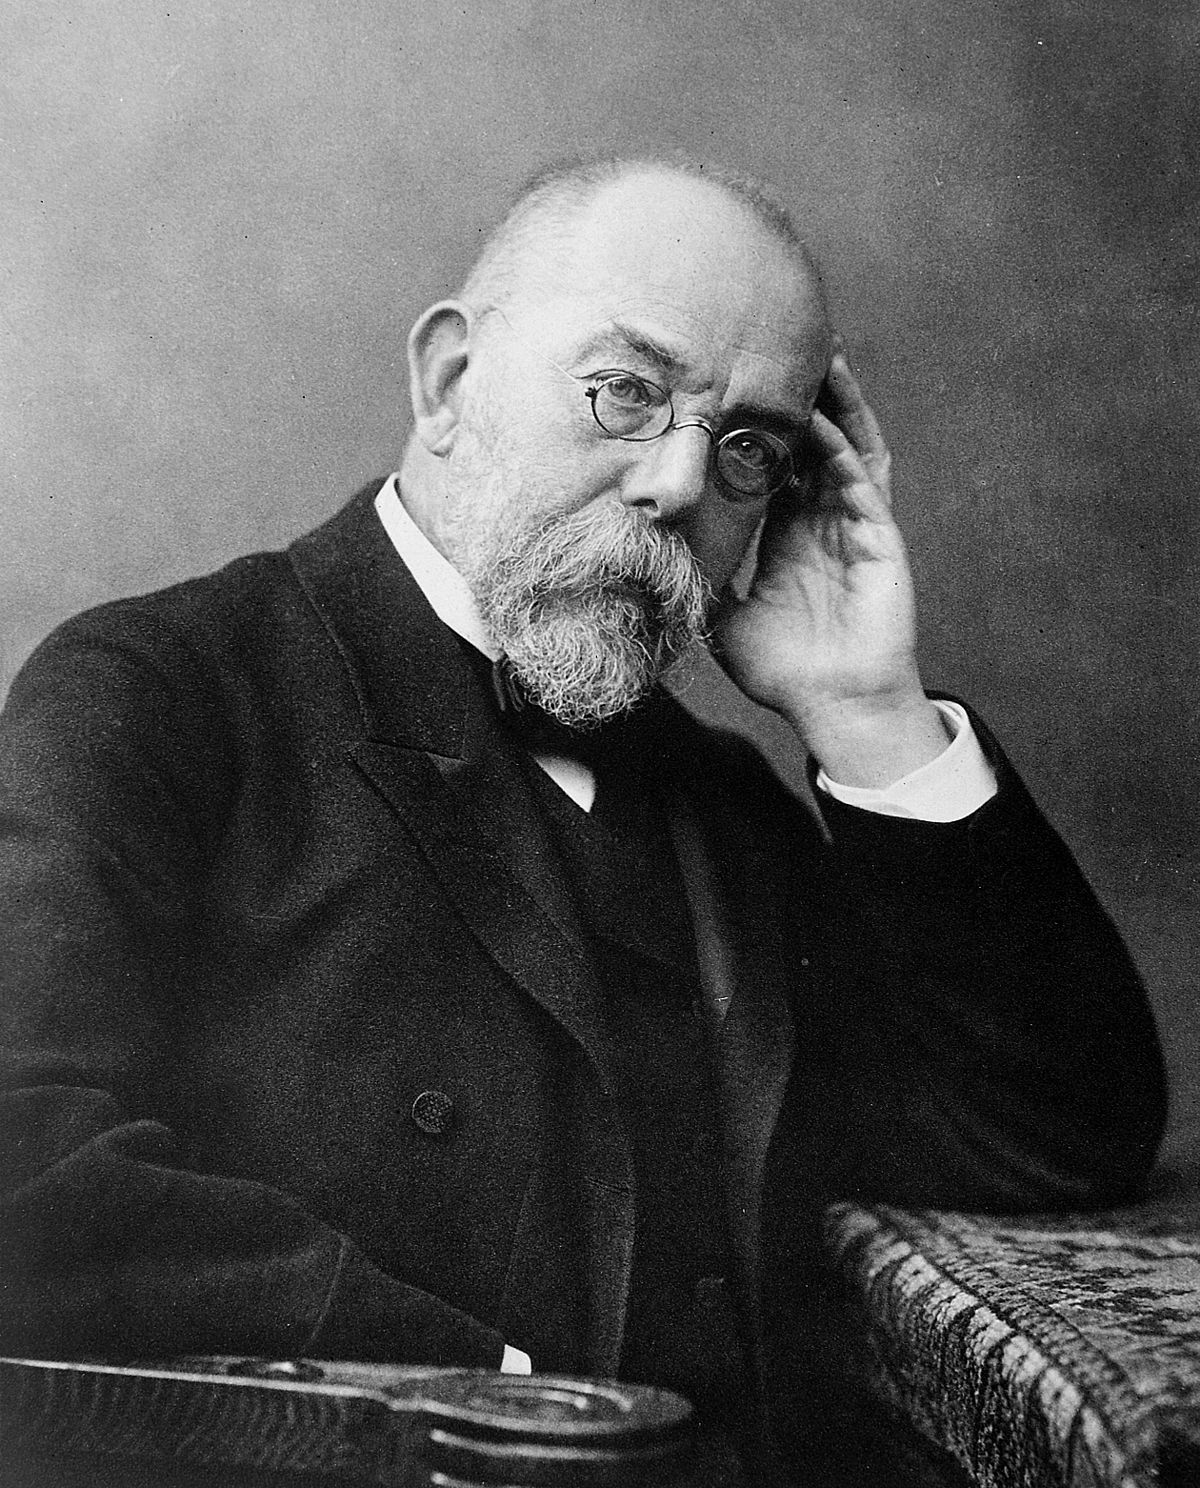 Robert koch wikipedia for Koch deutschland